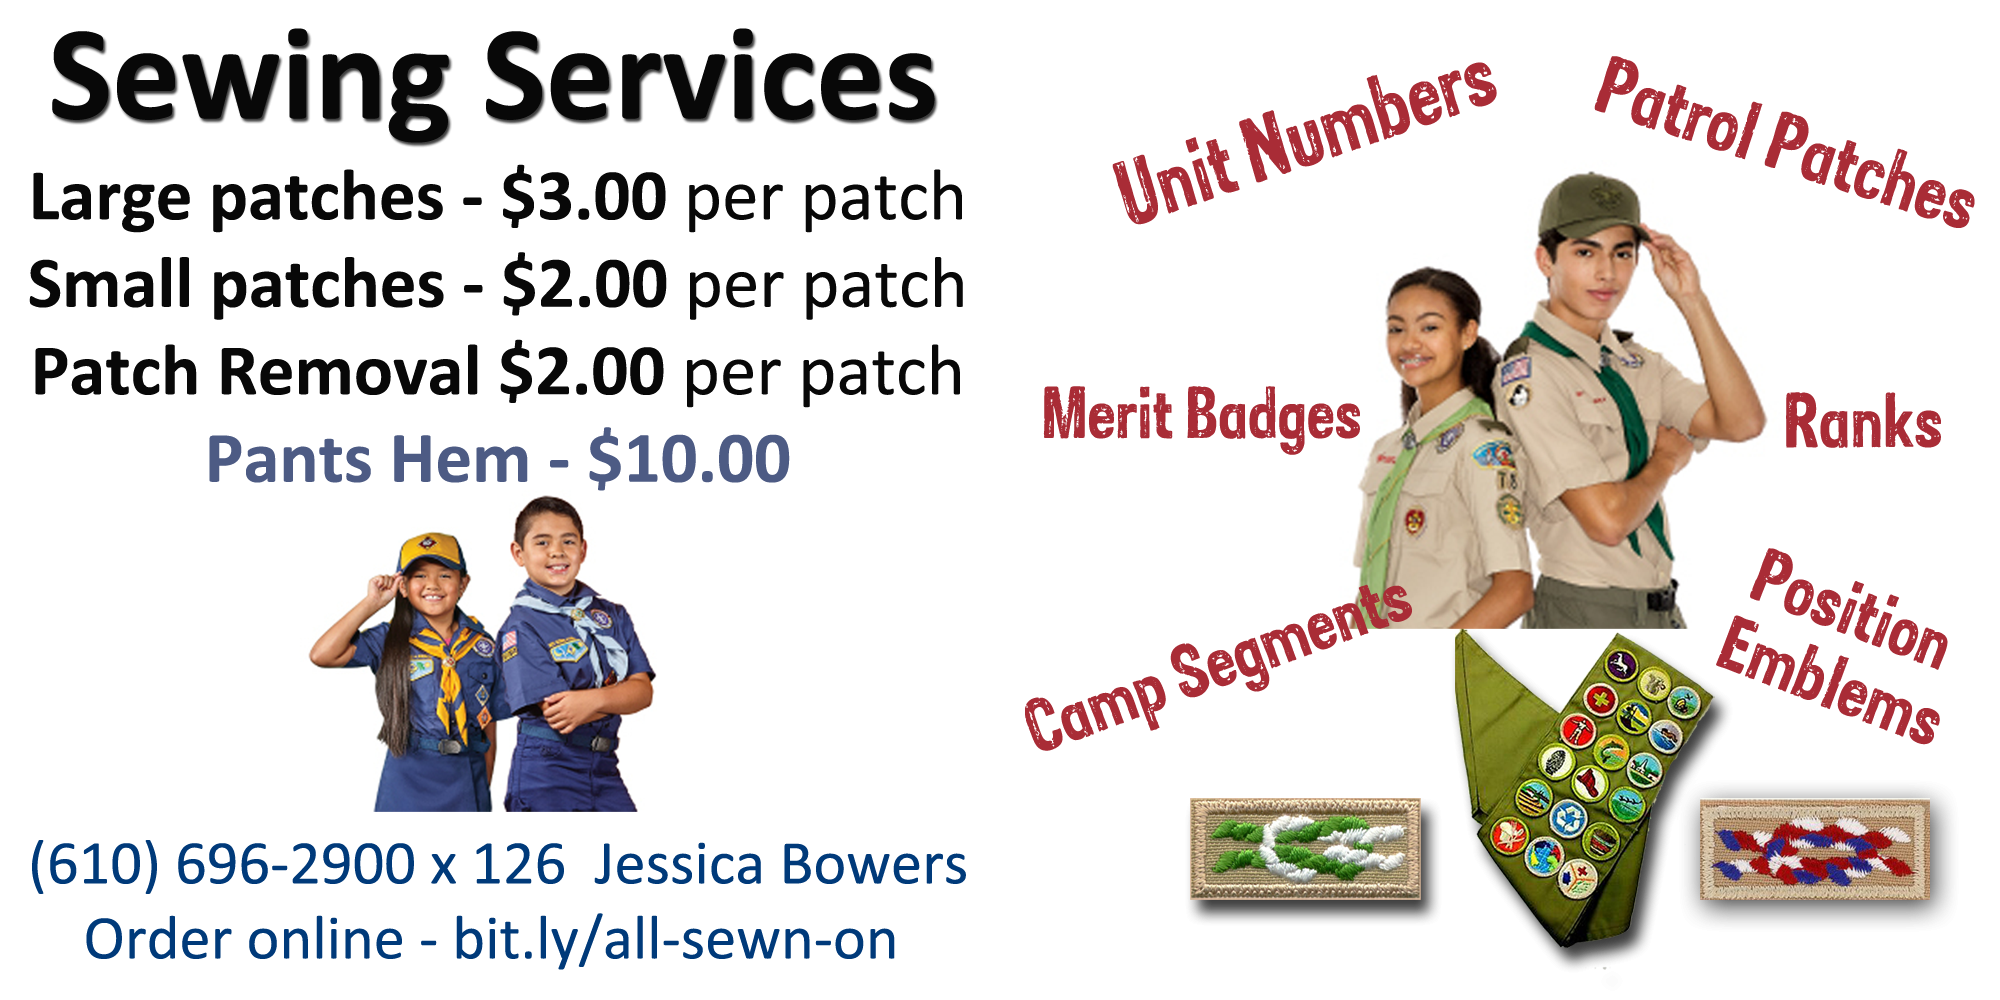 Sewing Services Web2